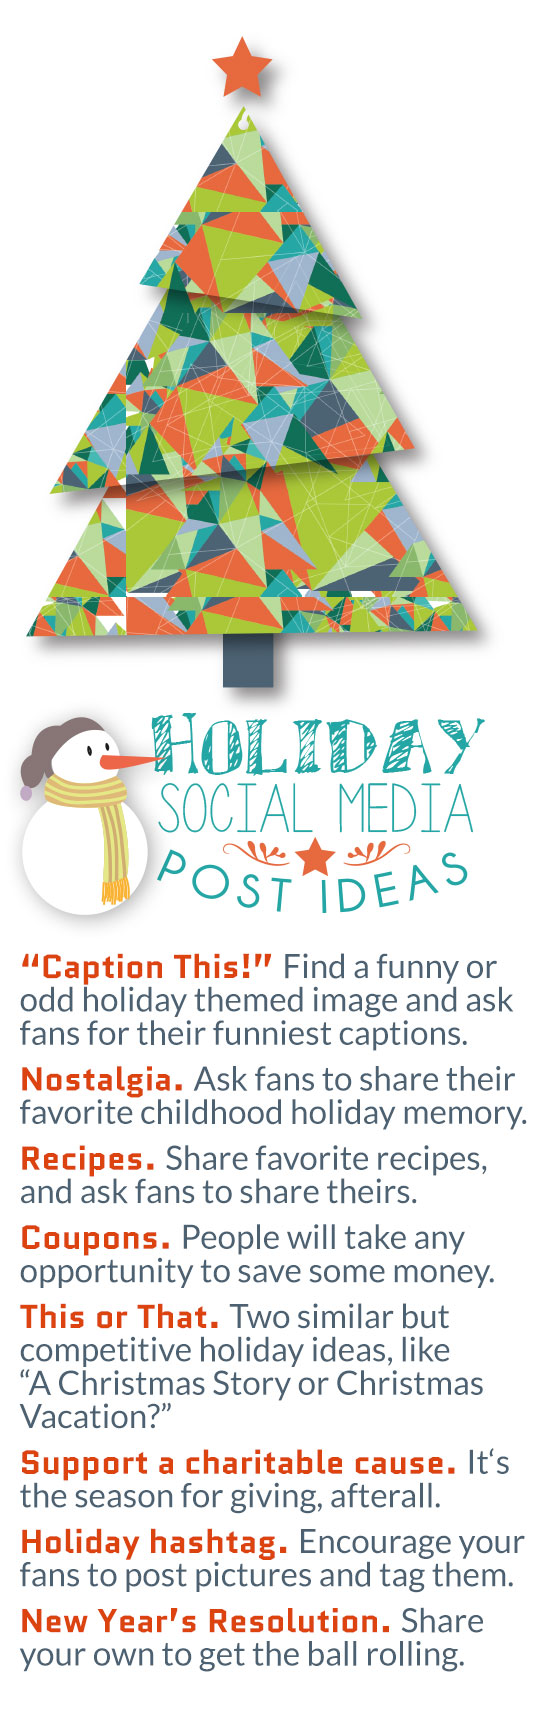 8 Holiday Social Media Post Ideas